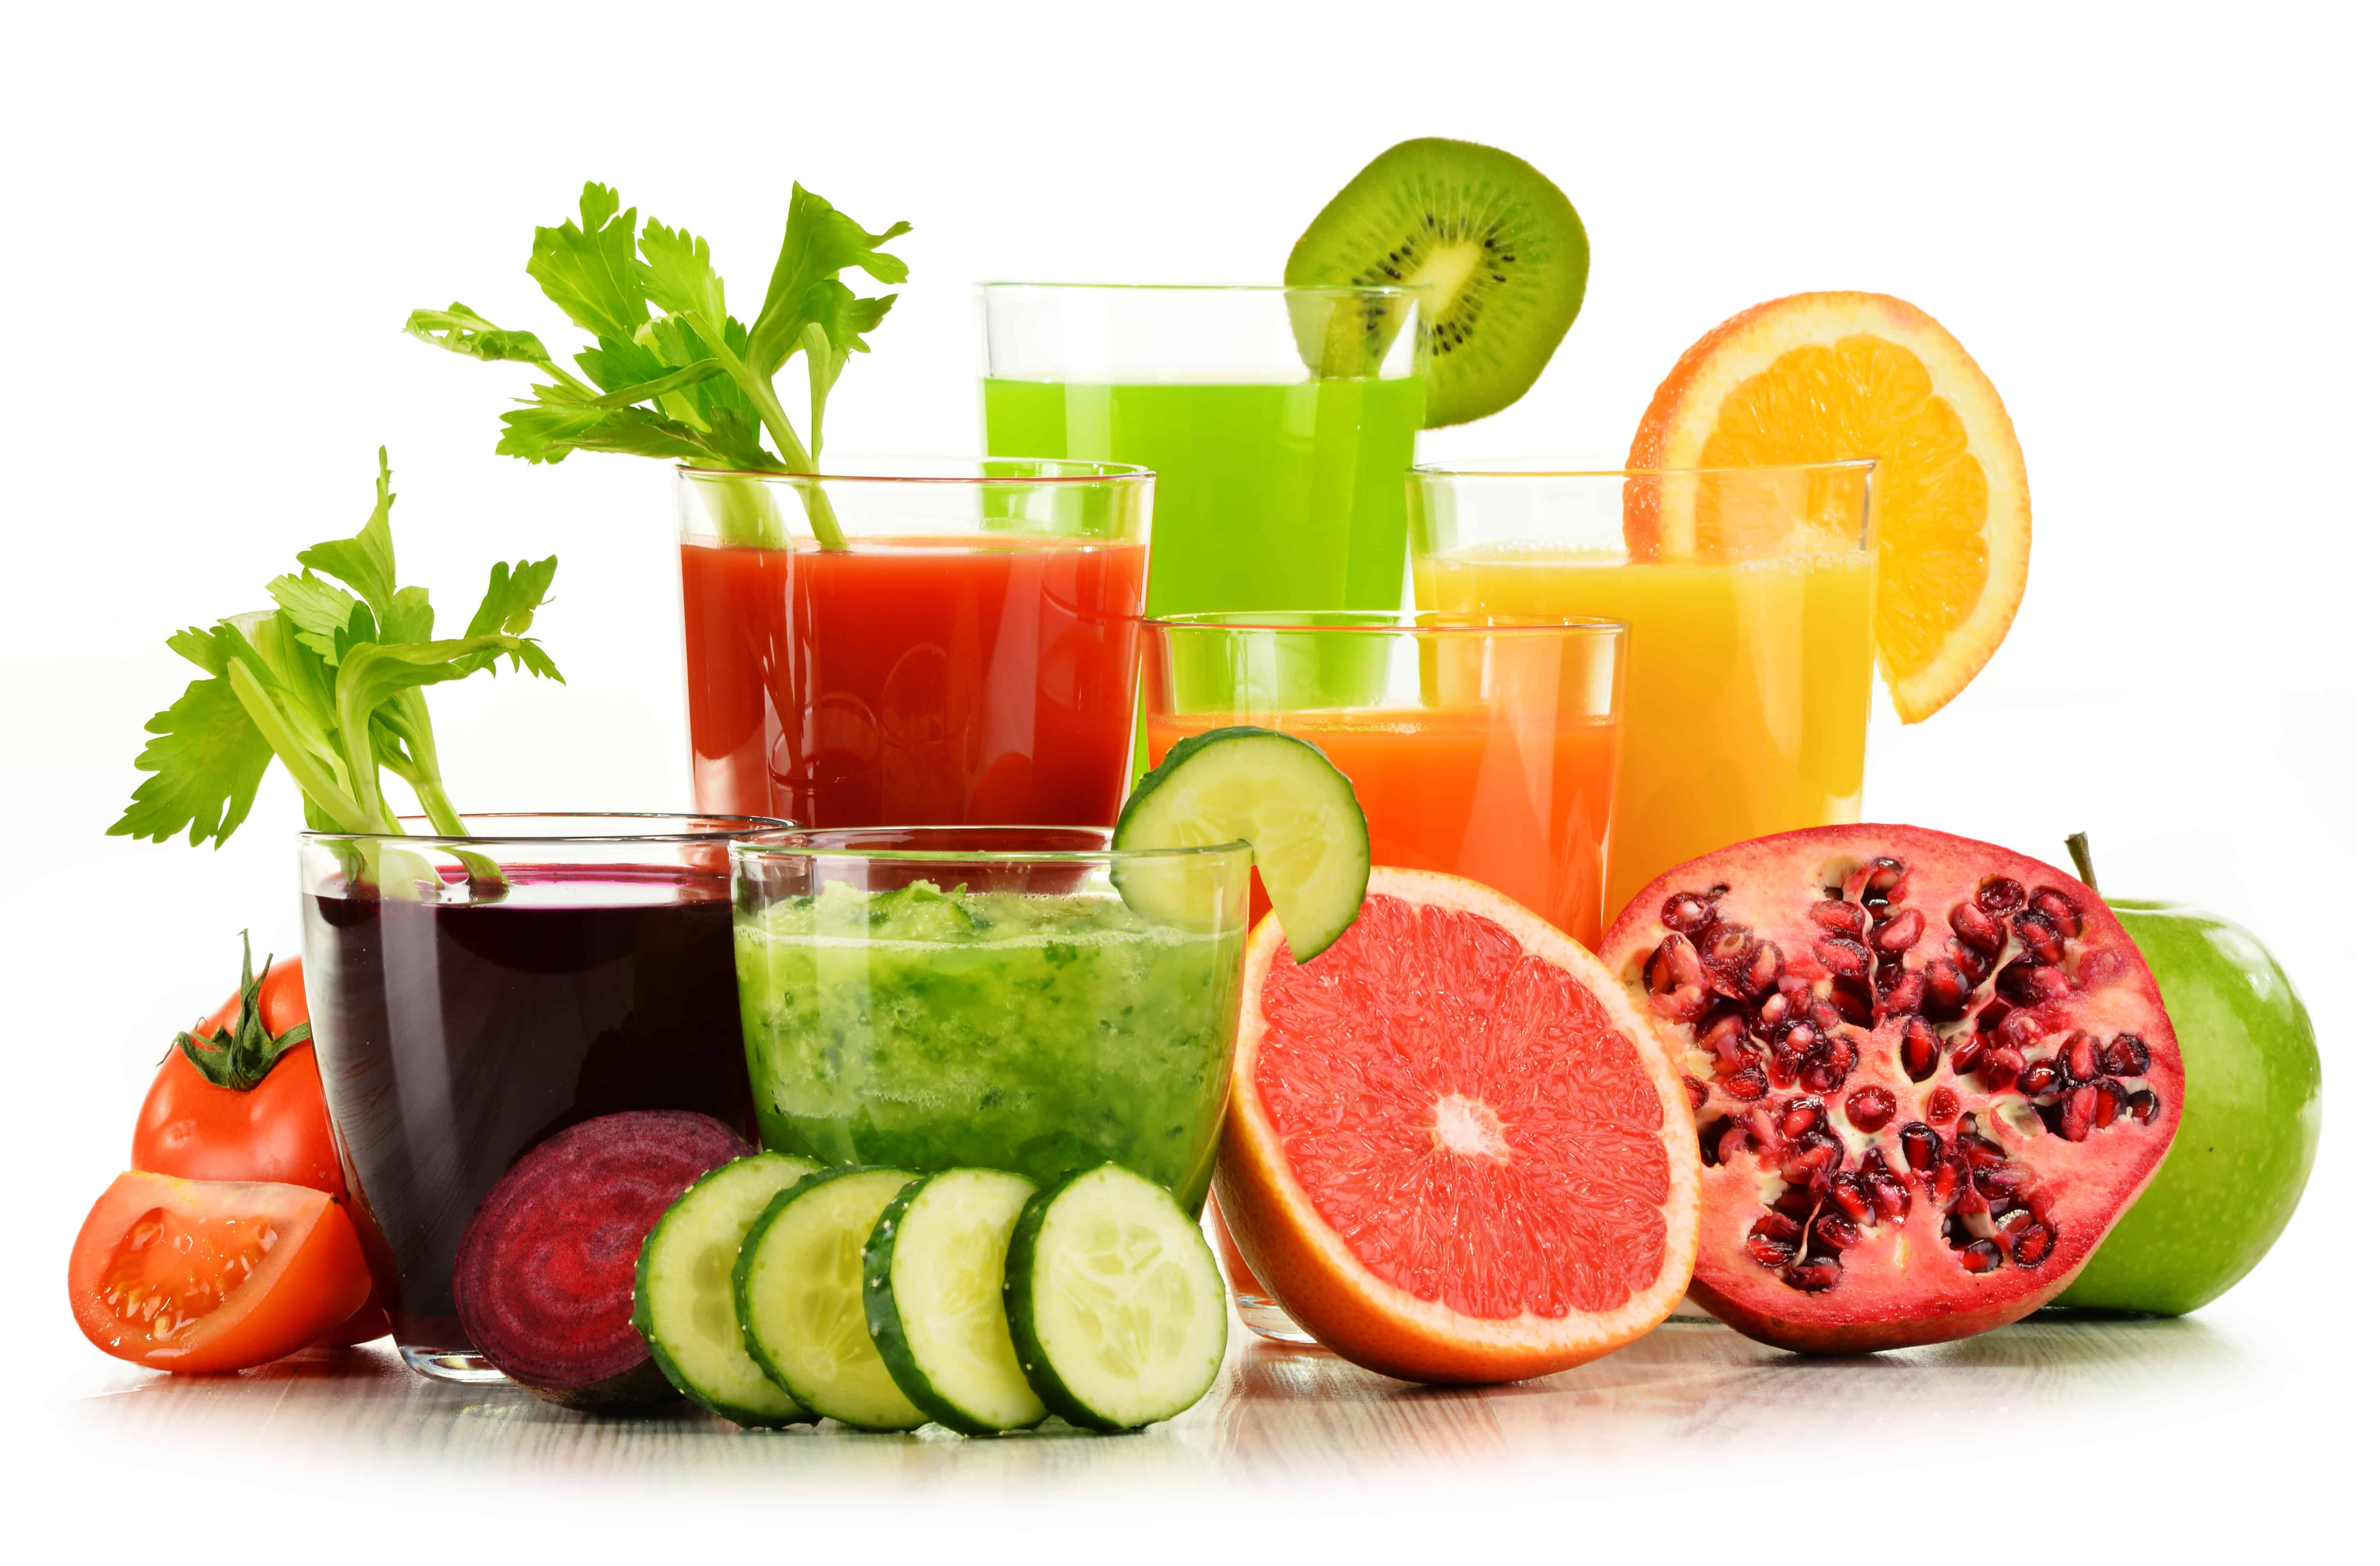 What Is The Best Natural Way To Detox Your Body